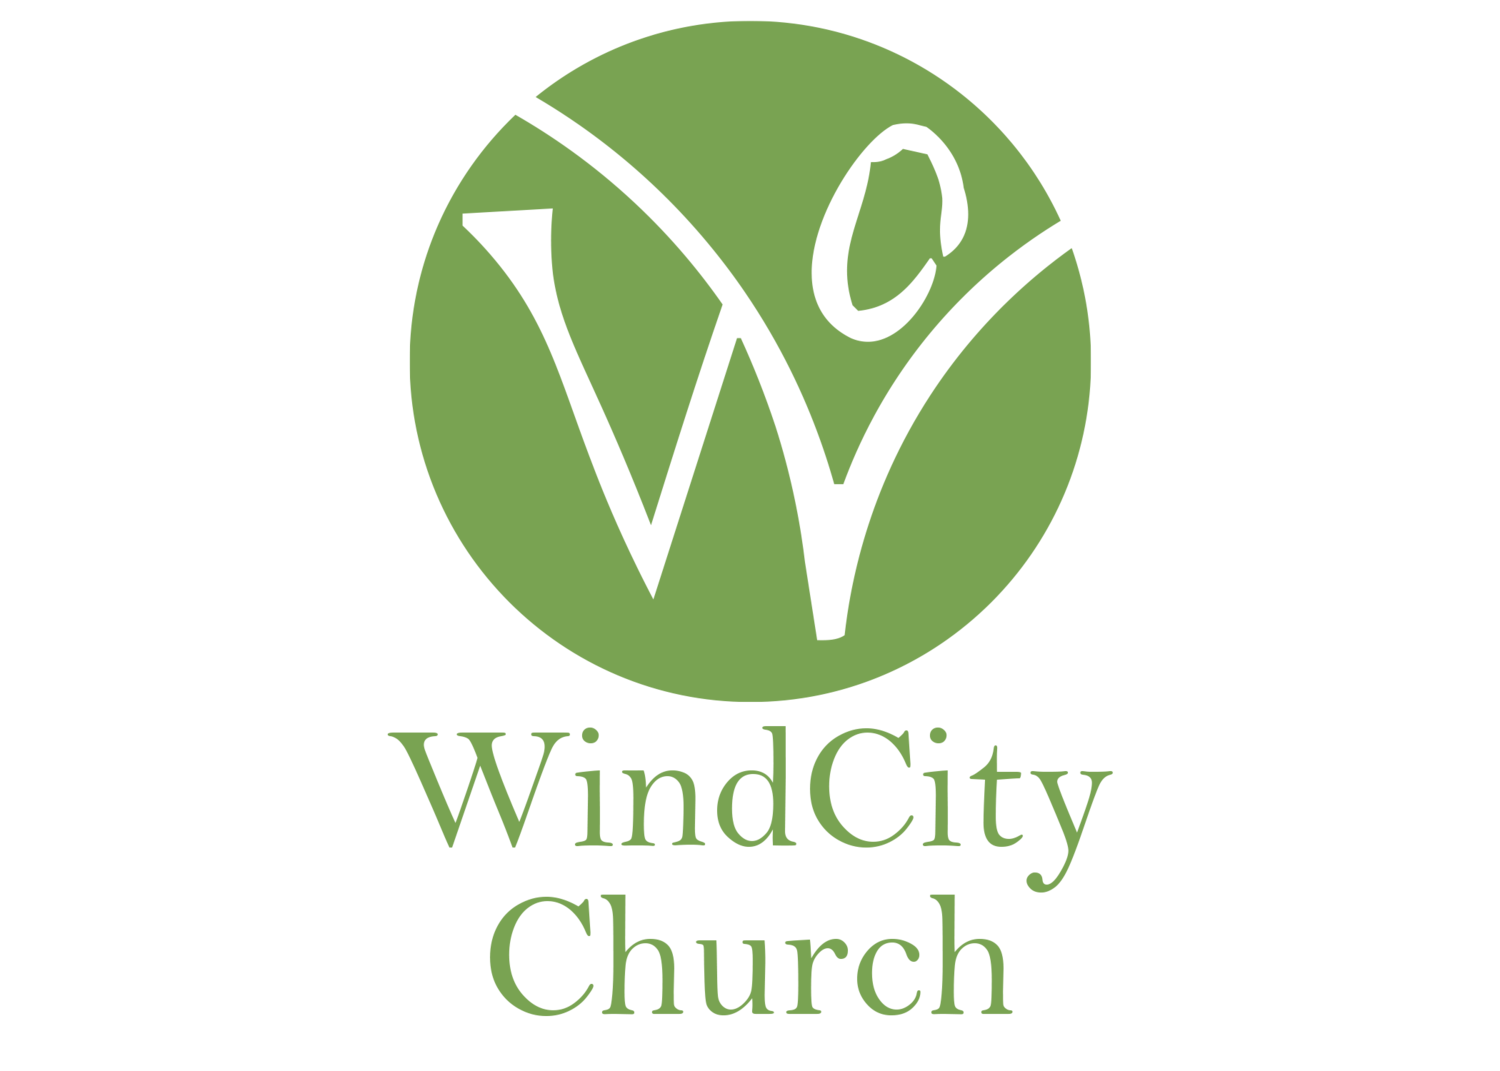 Wind City Church